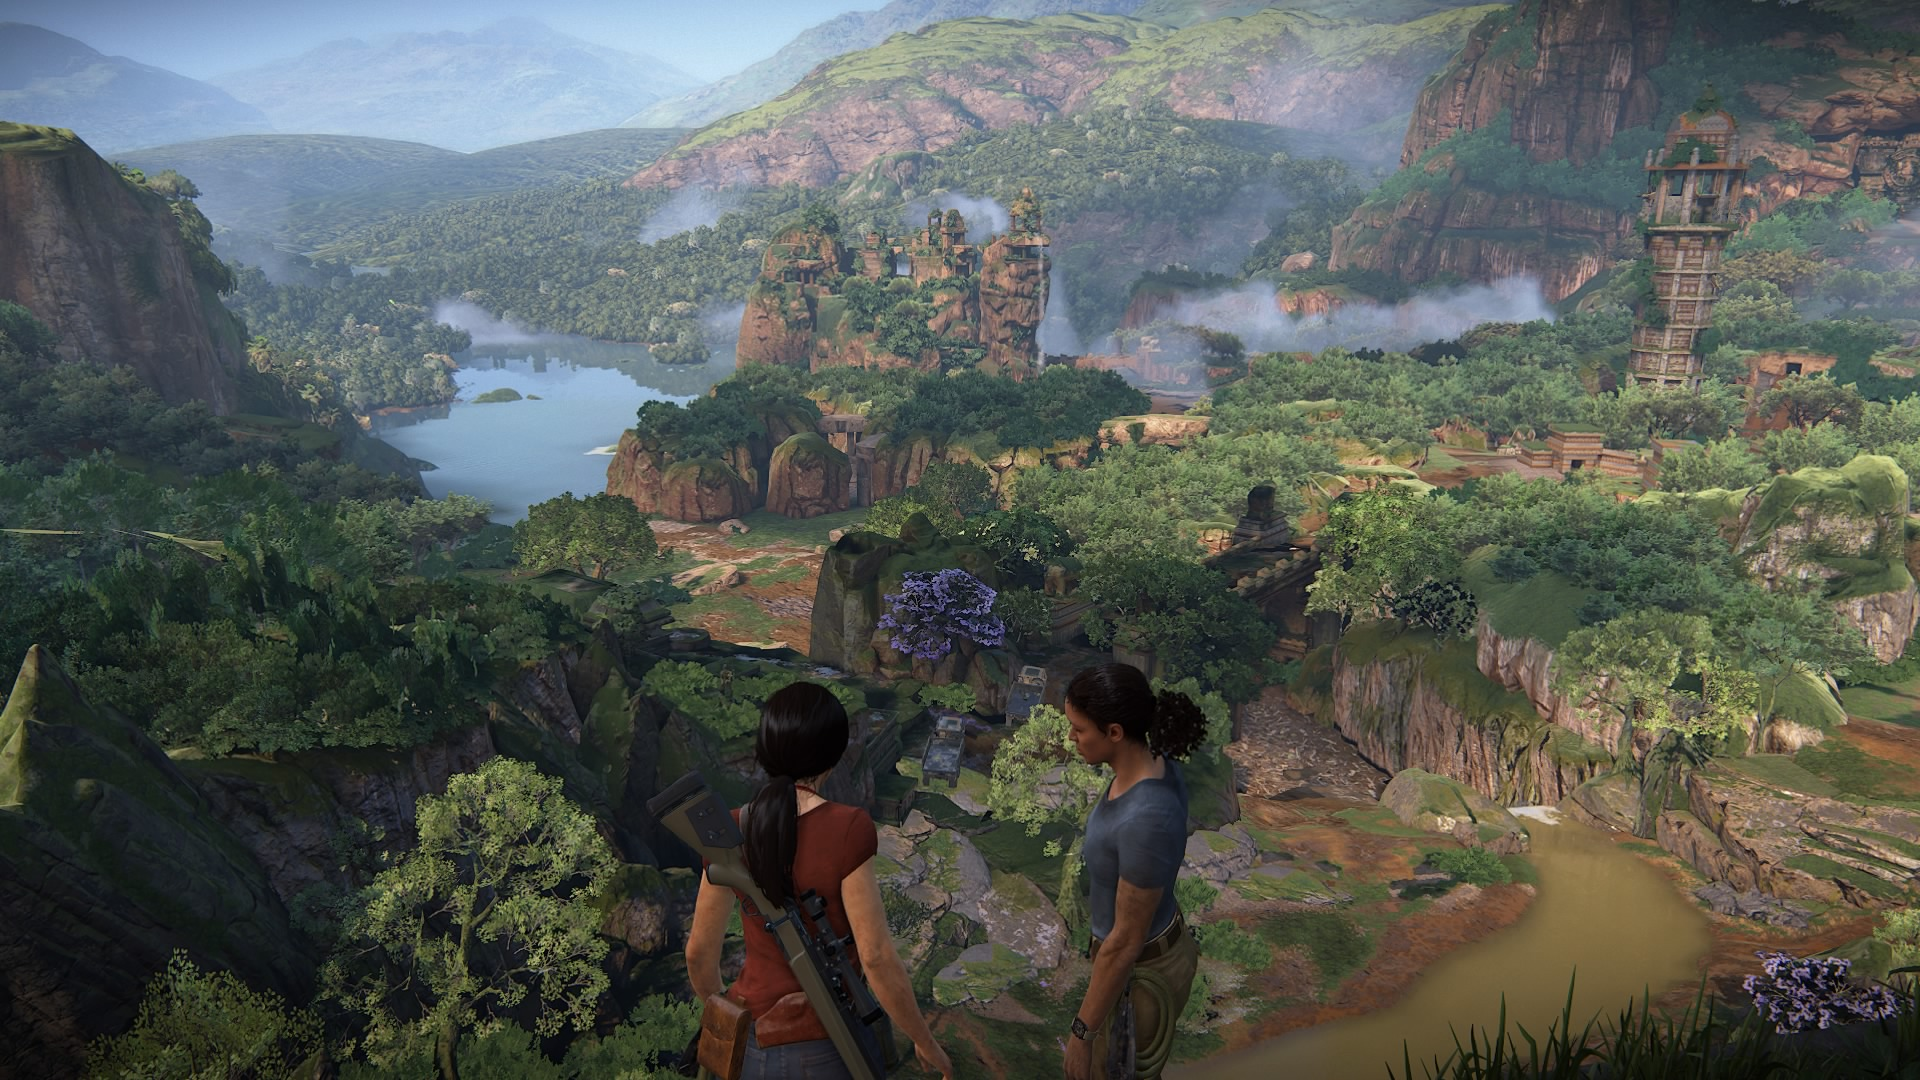 Uncharted_TM___The_Lost_Legacy_20170828230217.jpg